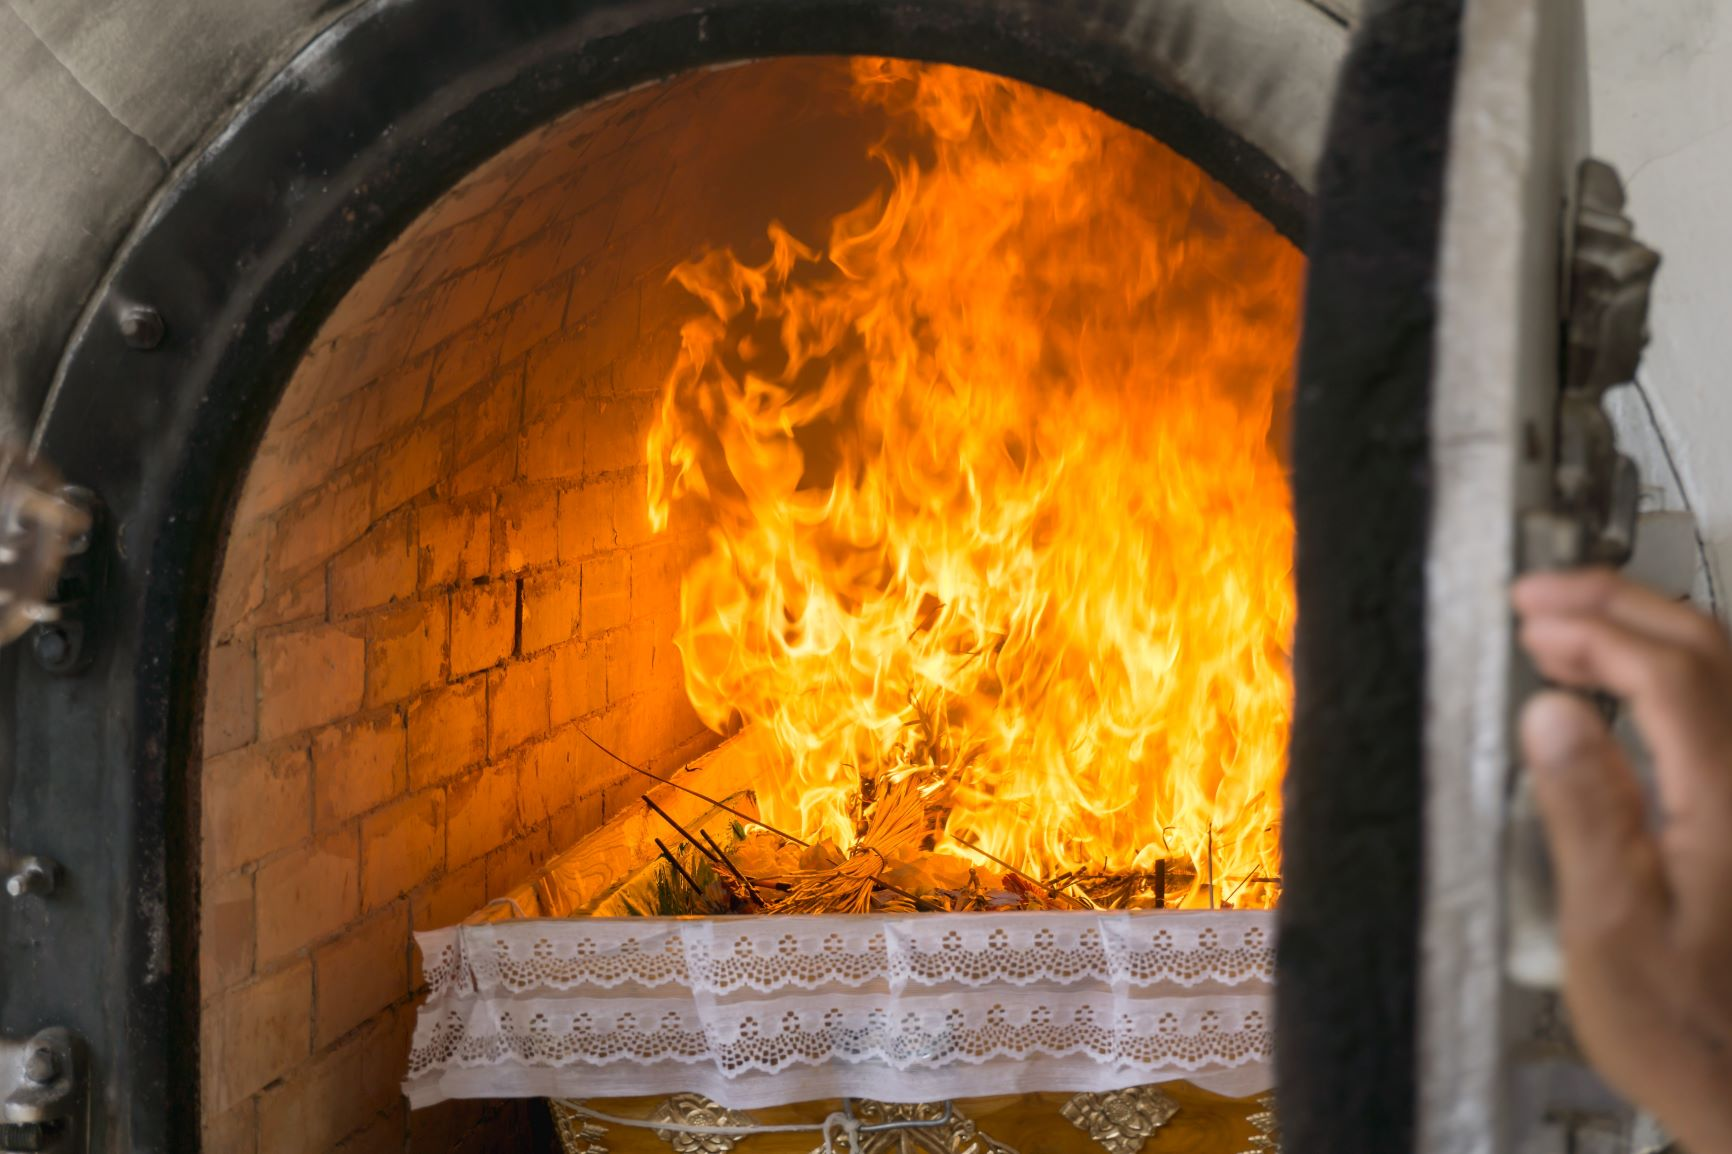 The Cremation Process and How It Works